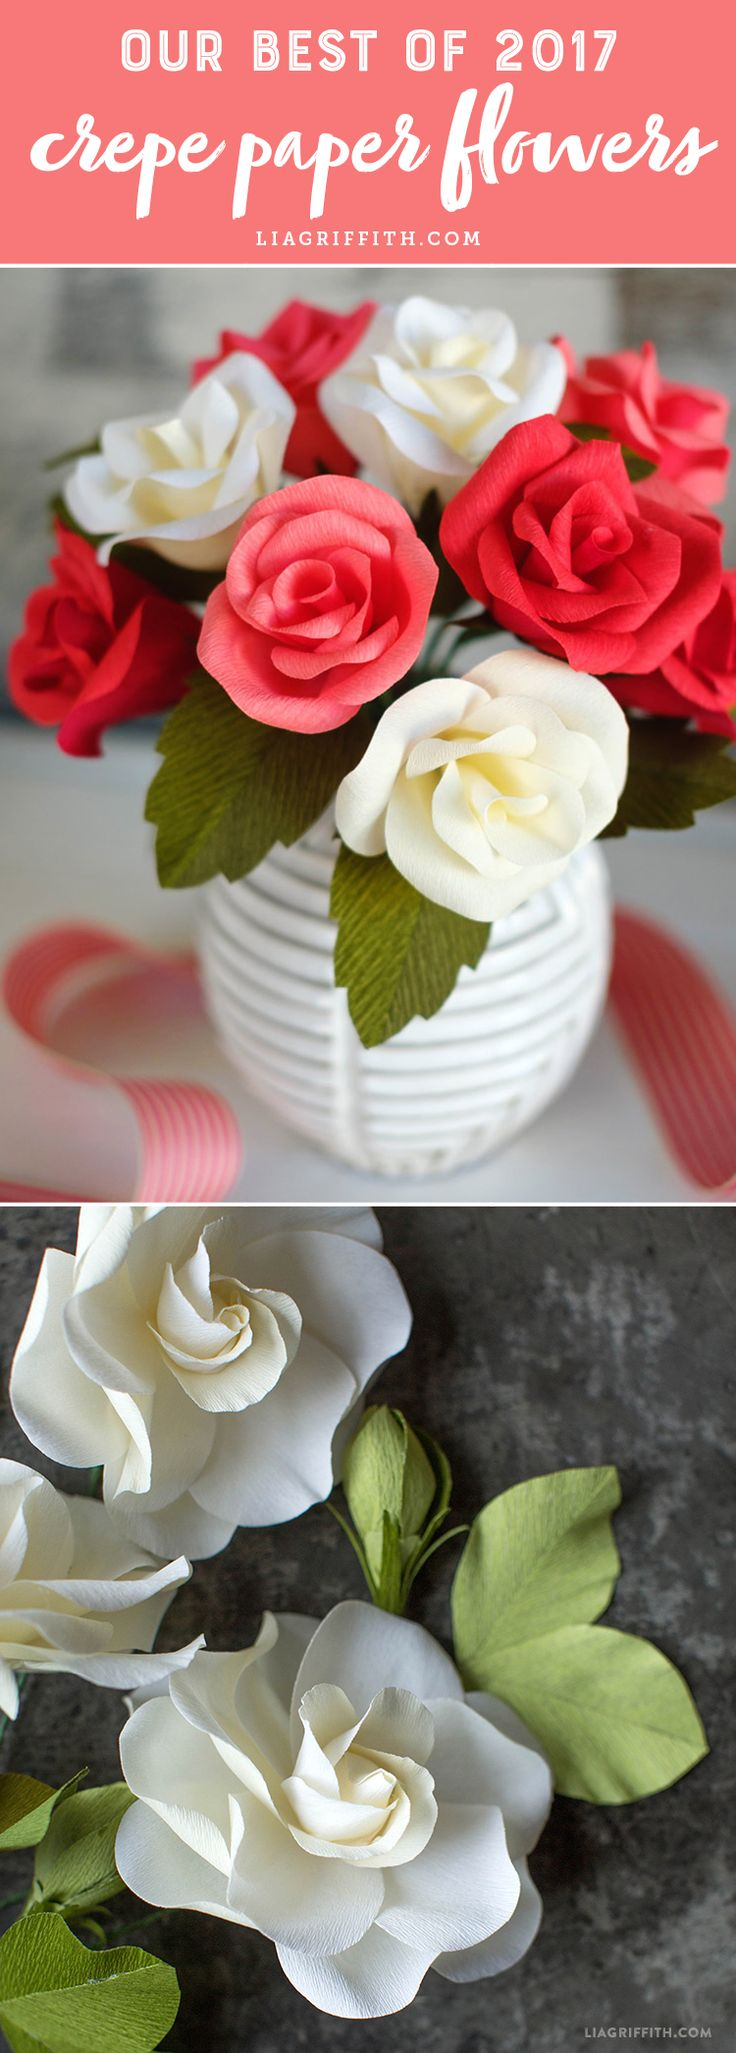 Our Best of 2017 Crepe Paper Flowers - Lia Griffith - www.liagriffith.com #paperflower #paperflowers #paperart #paper #crepepaper #crepepaperflowers #crepepaperrevival #diyproject #diyprojects #diyinspiration #diycraft #diycrafts #diyidea #diyideas #madewithlia